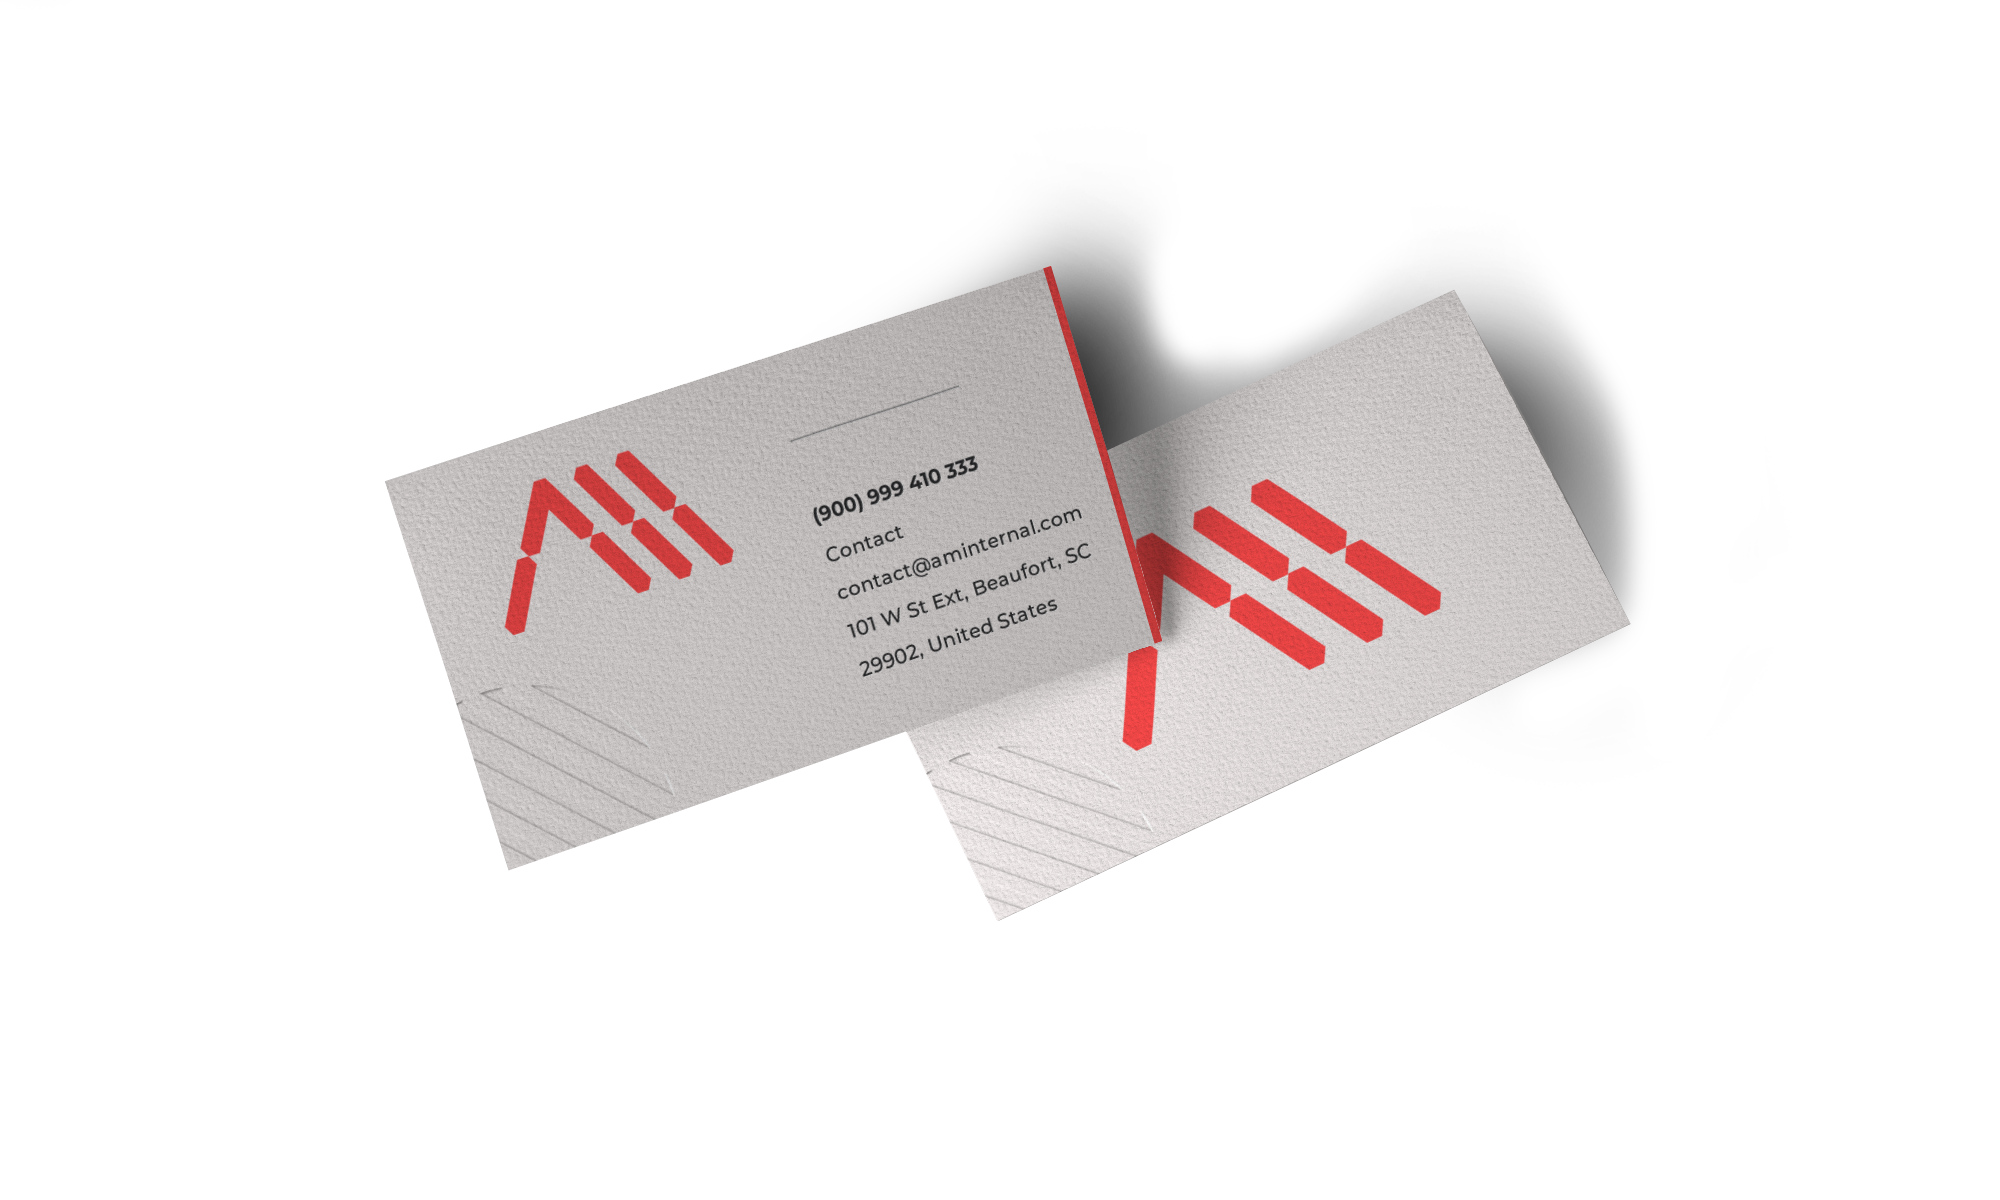 2 business cards displaying a creative logo designed by control advertising